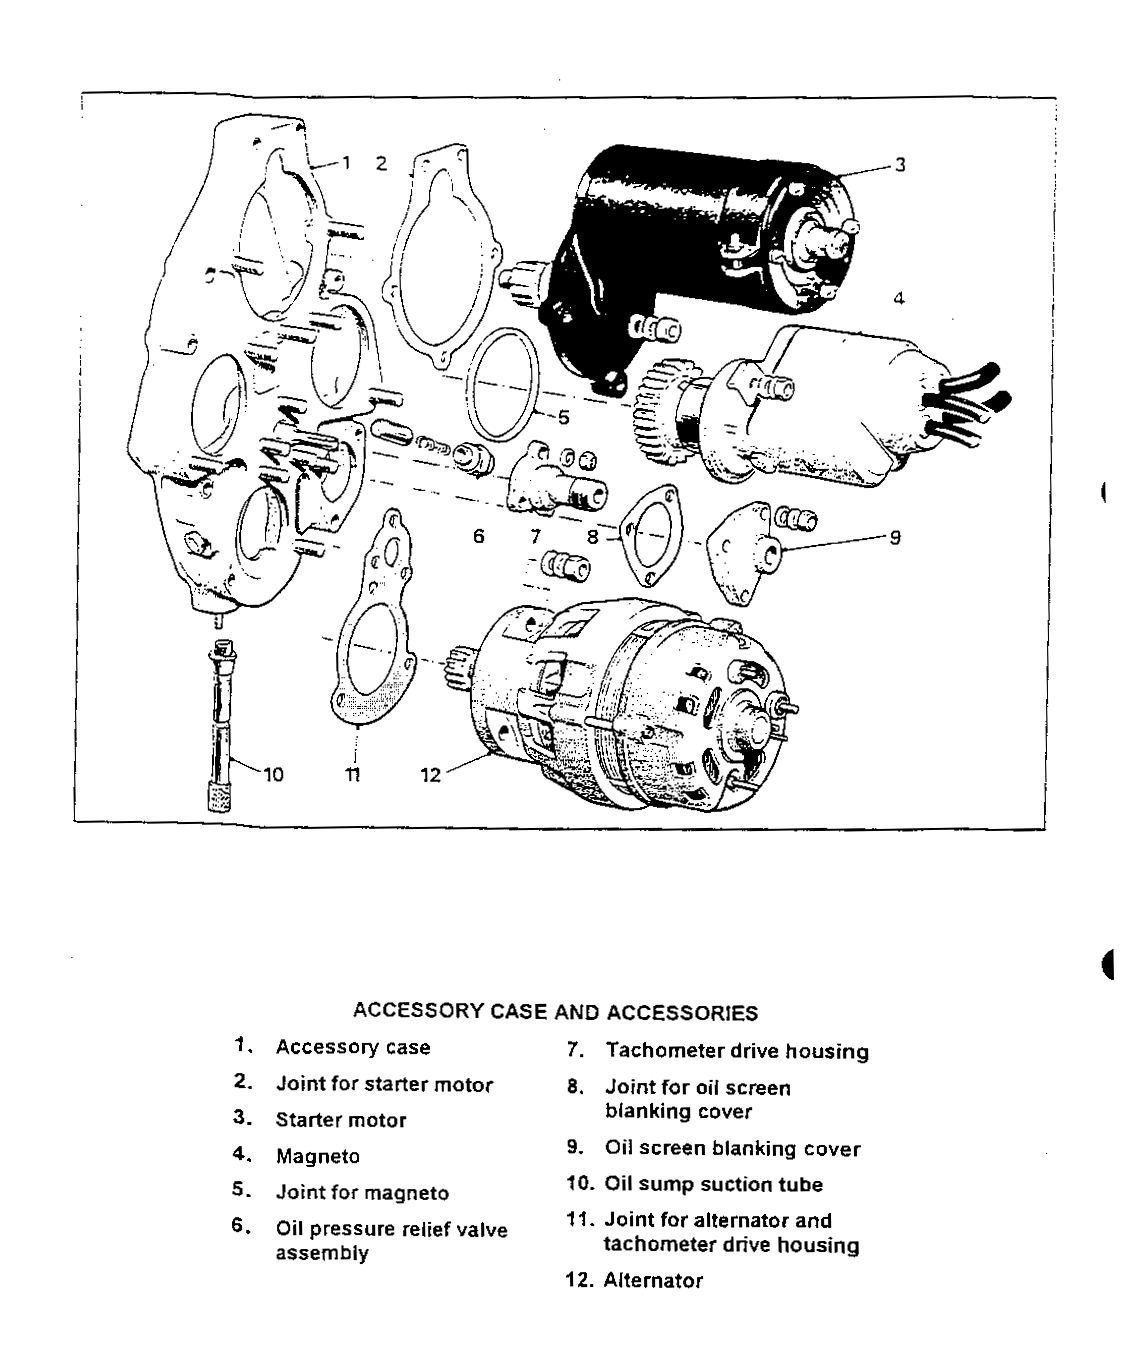 medium resolution of gear trains containing both spur and bevel type gears are used in the different types of engines for driving engine components and accessories